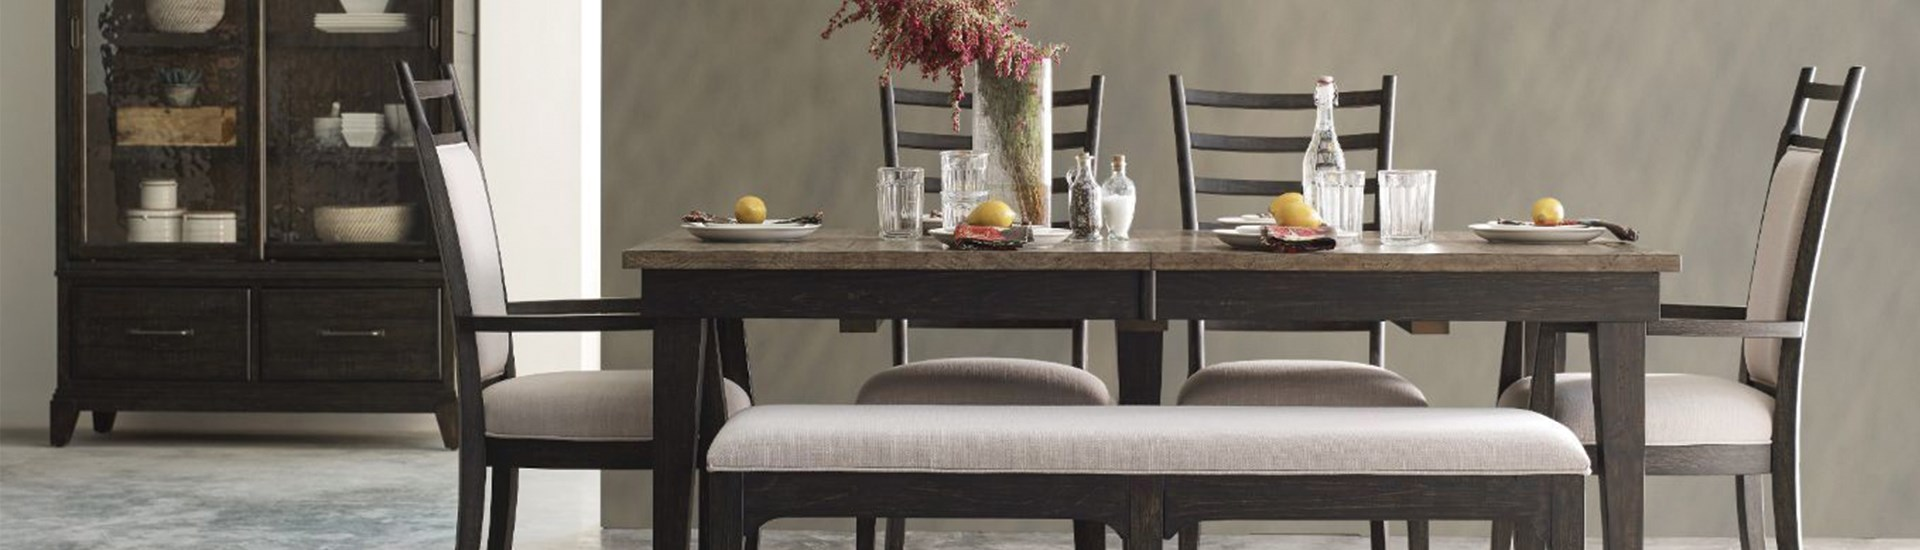 dining room table and chair set with a bench